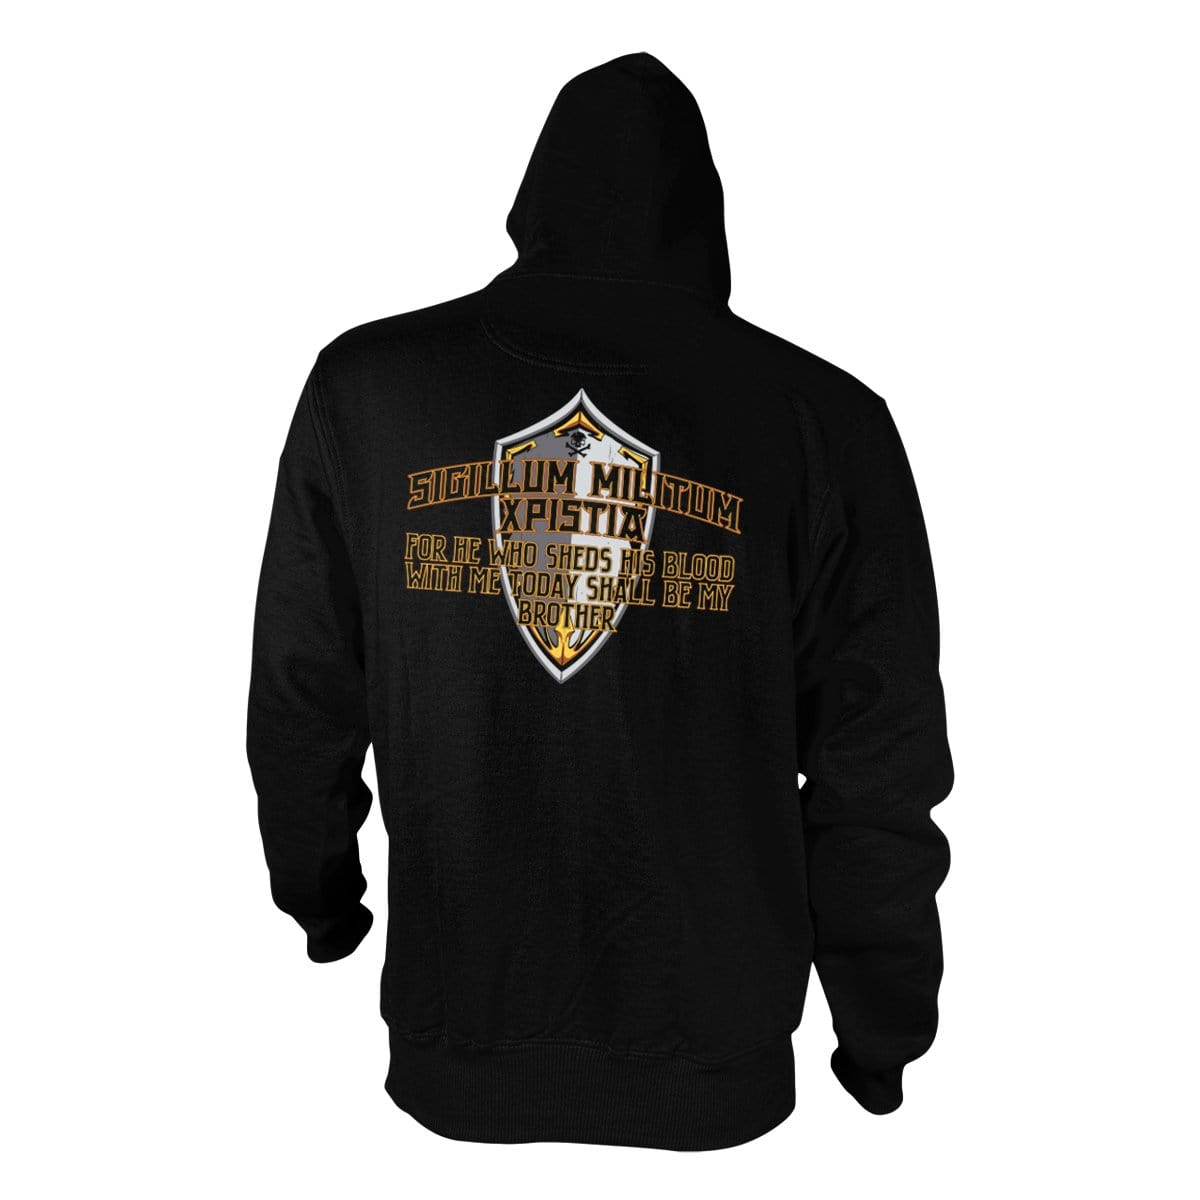 Brotherhood Hoodie - Black - Hoodies - Pipe Hitters Union